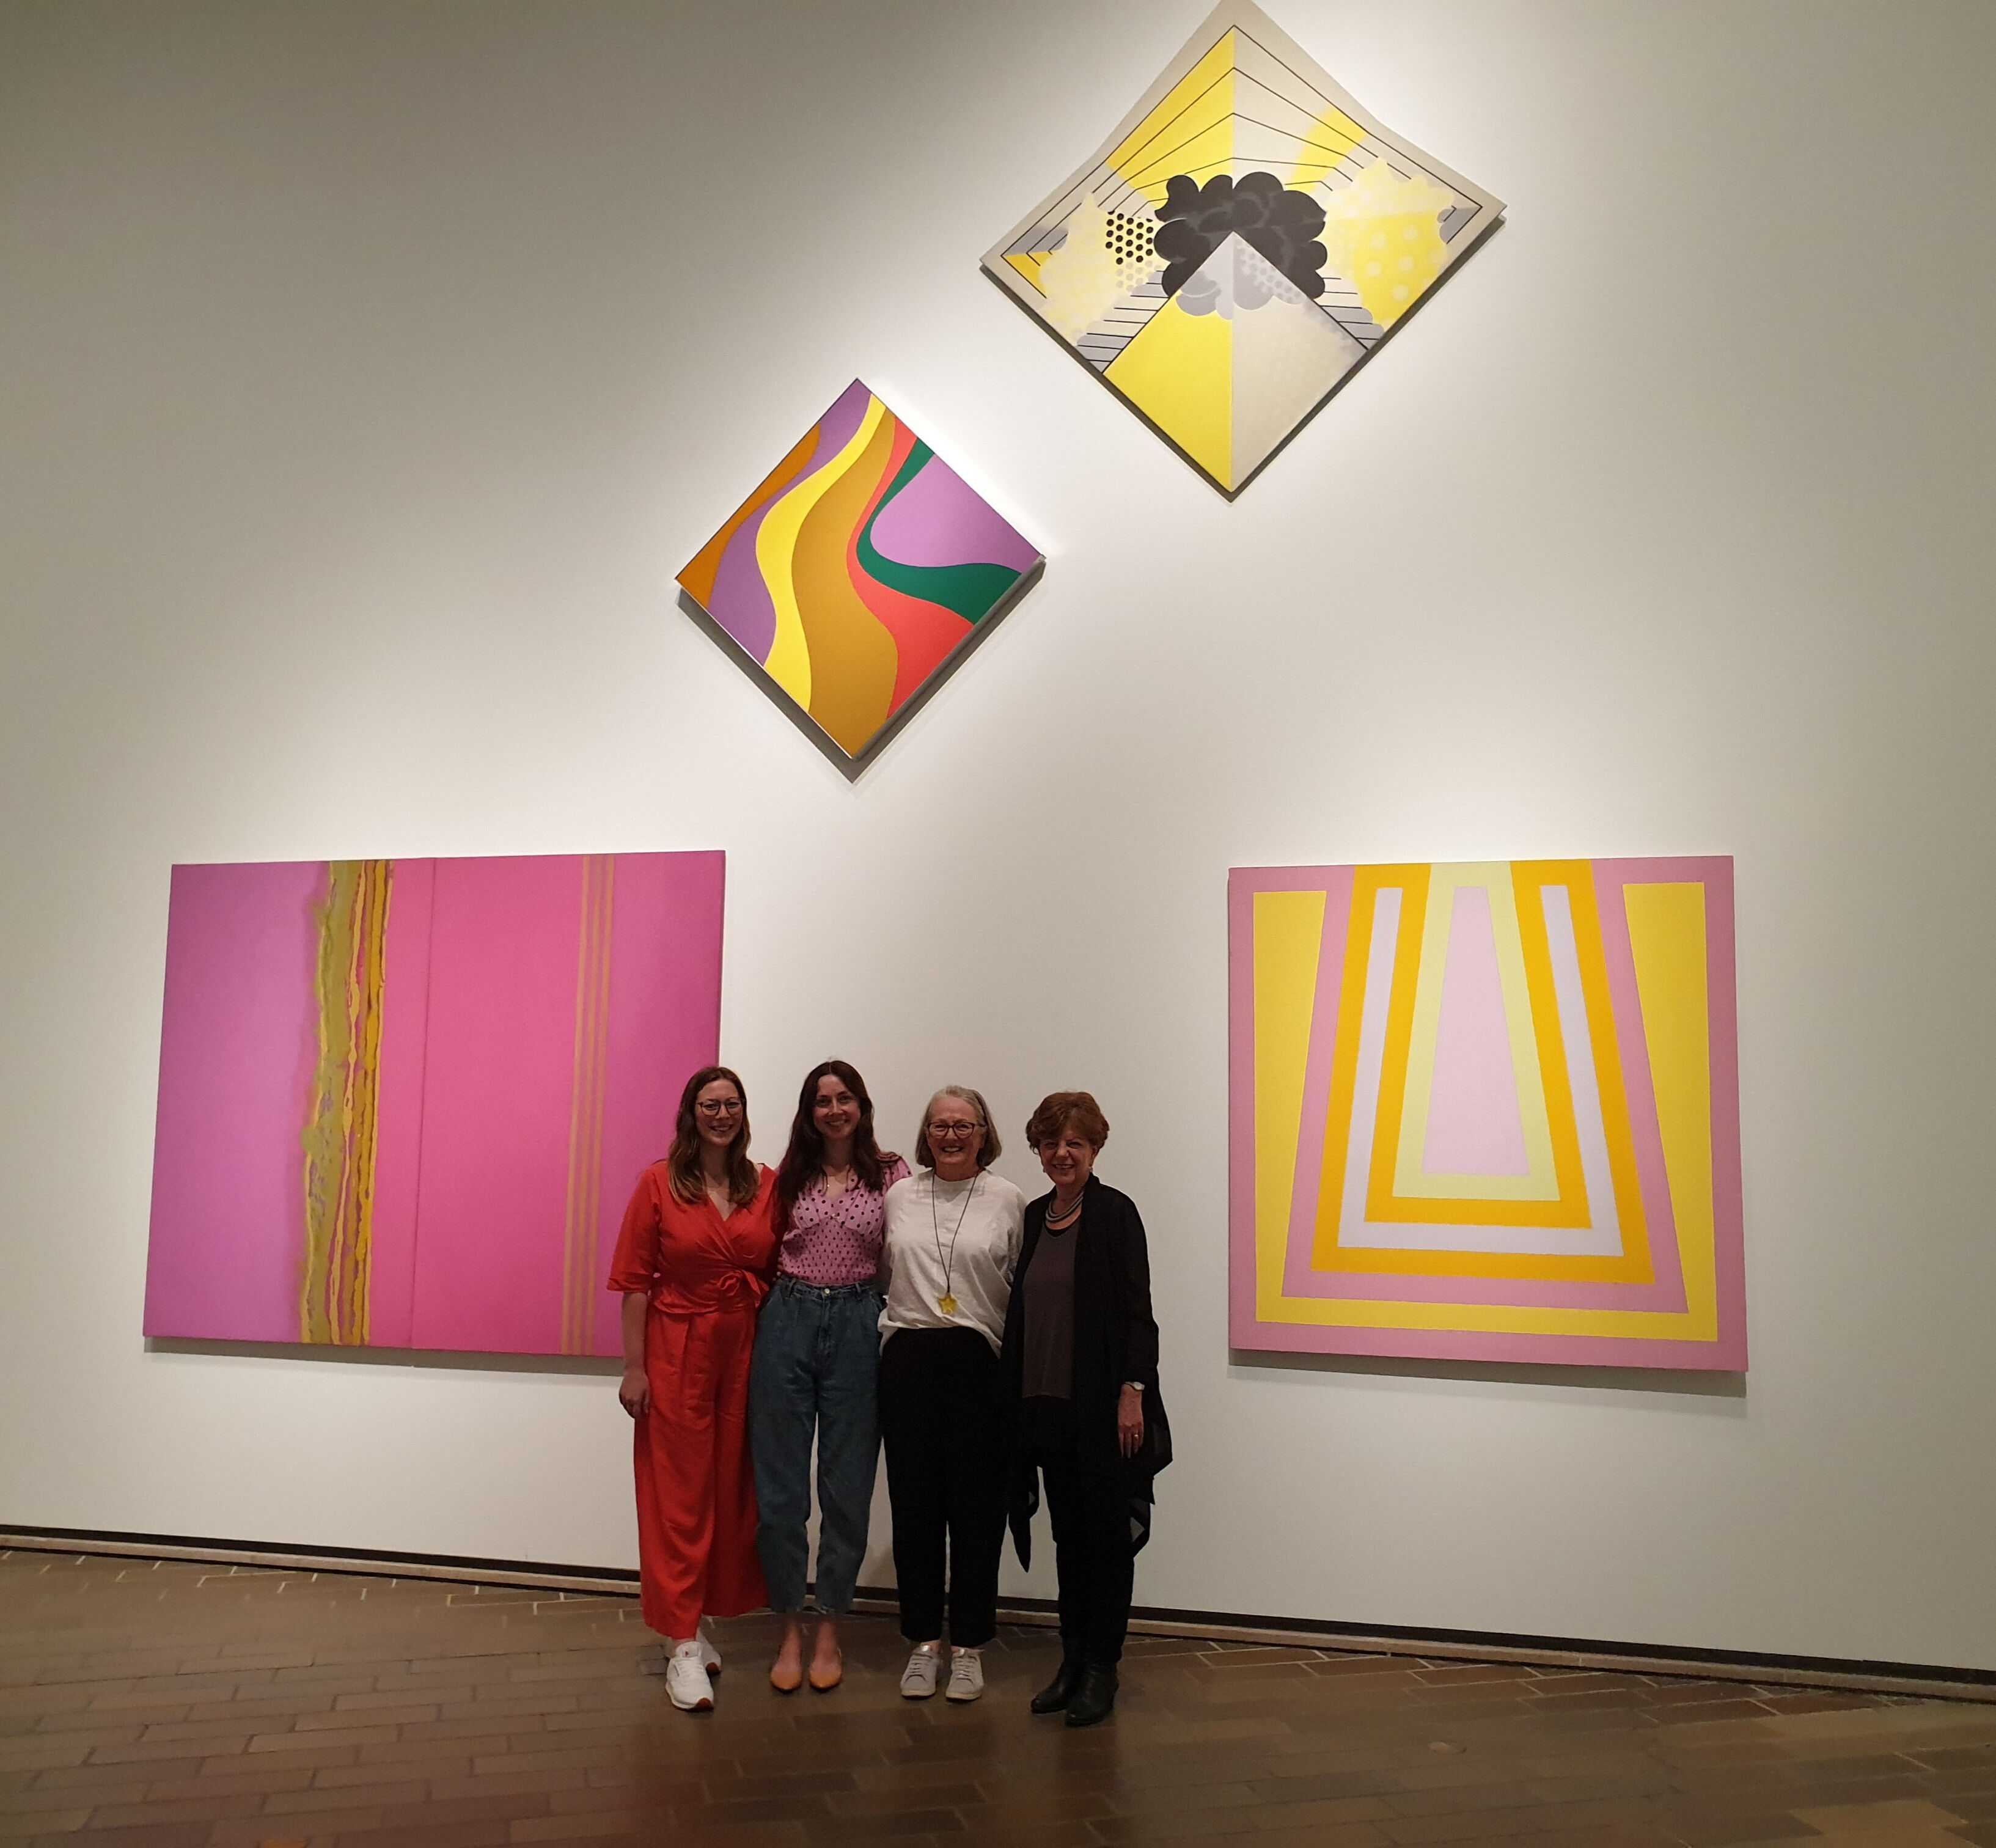 'Sukhavati No. 5' by Margret Worth in the exhibition 'Know My Name'.Curators R to L: Dr. Deborah Hart, (artist MW), Elspeth Pitt, Yvette Dal Pozzo beneath 'Sukhavati No. 5' in the exhibition of Australian women artists 1900 to 2020